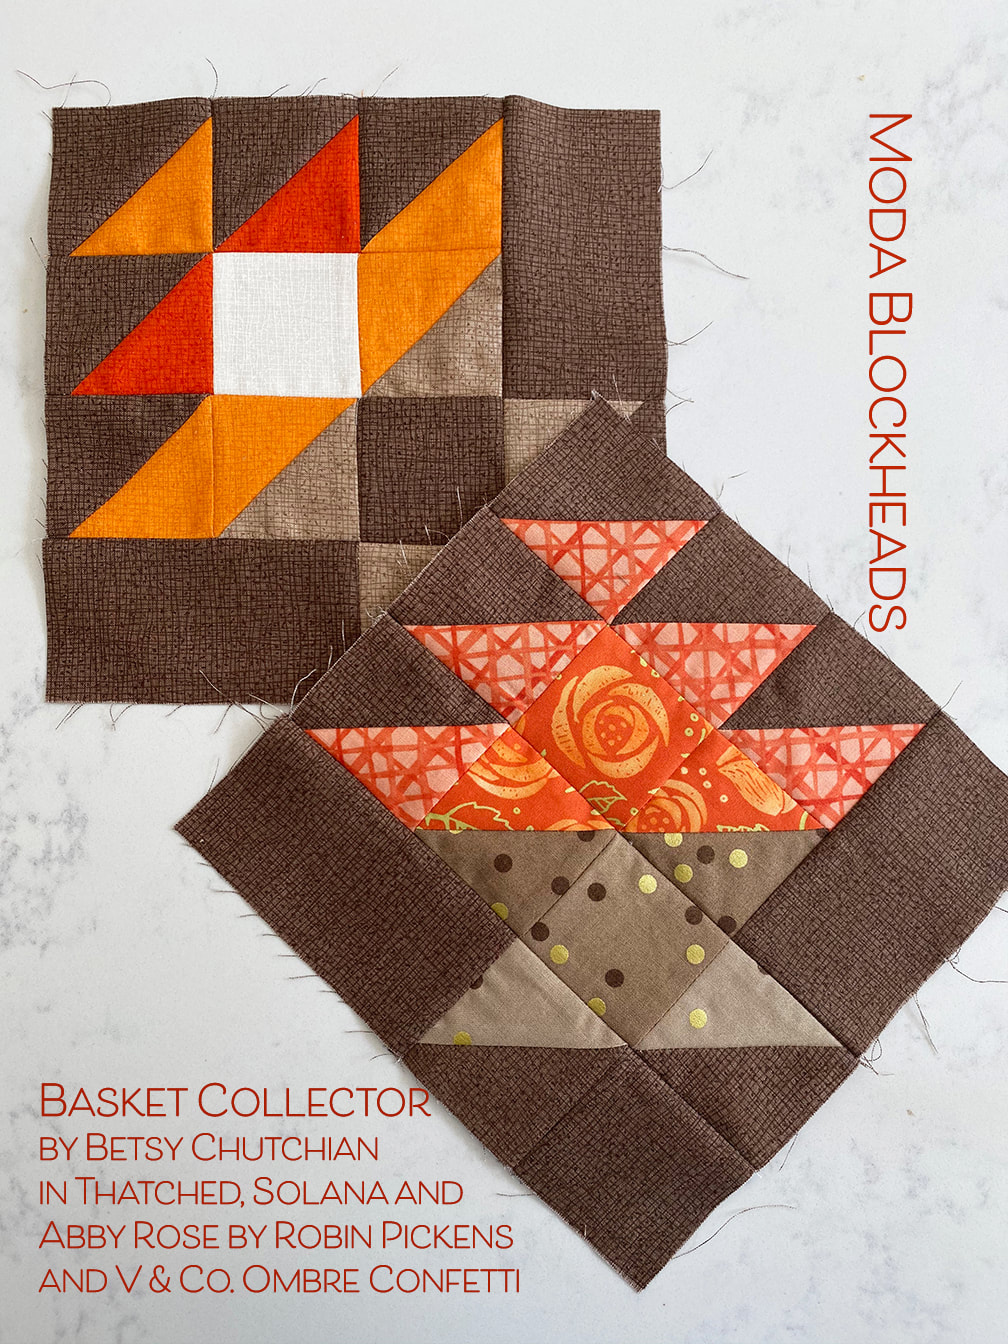 Basket Collector quilt block- Moda Blockheads from Betsy Chutchian done in Robin Pickens fabrics